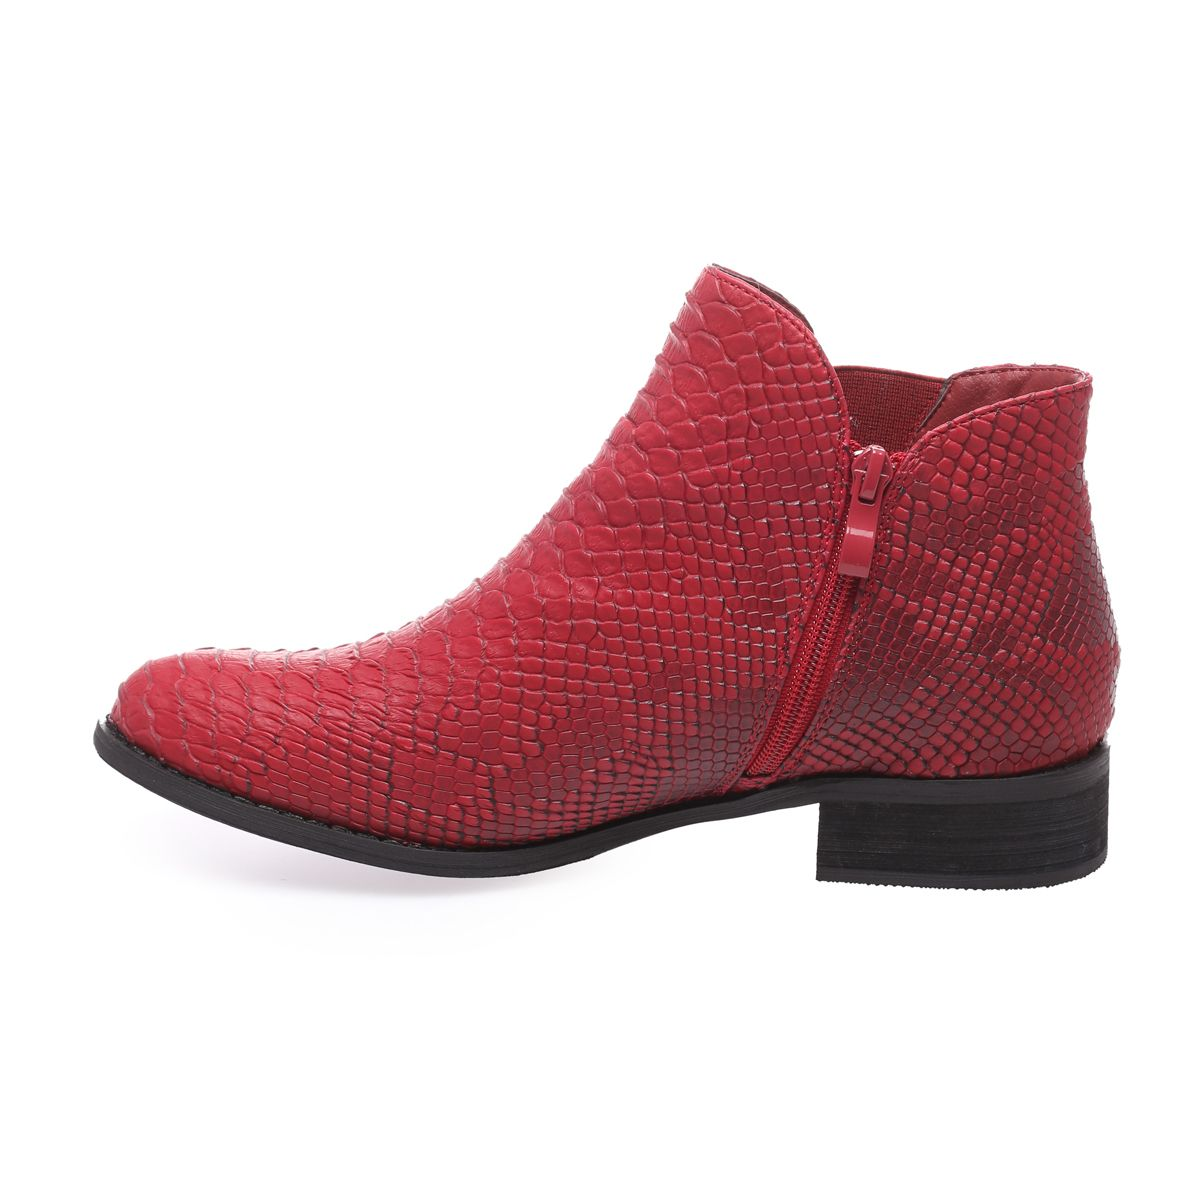 bottines rouges aspect croco femme pas chere